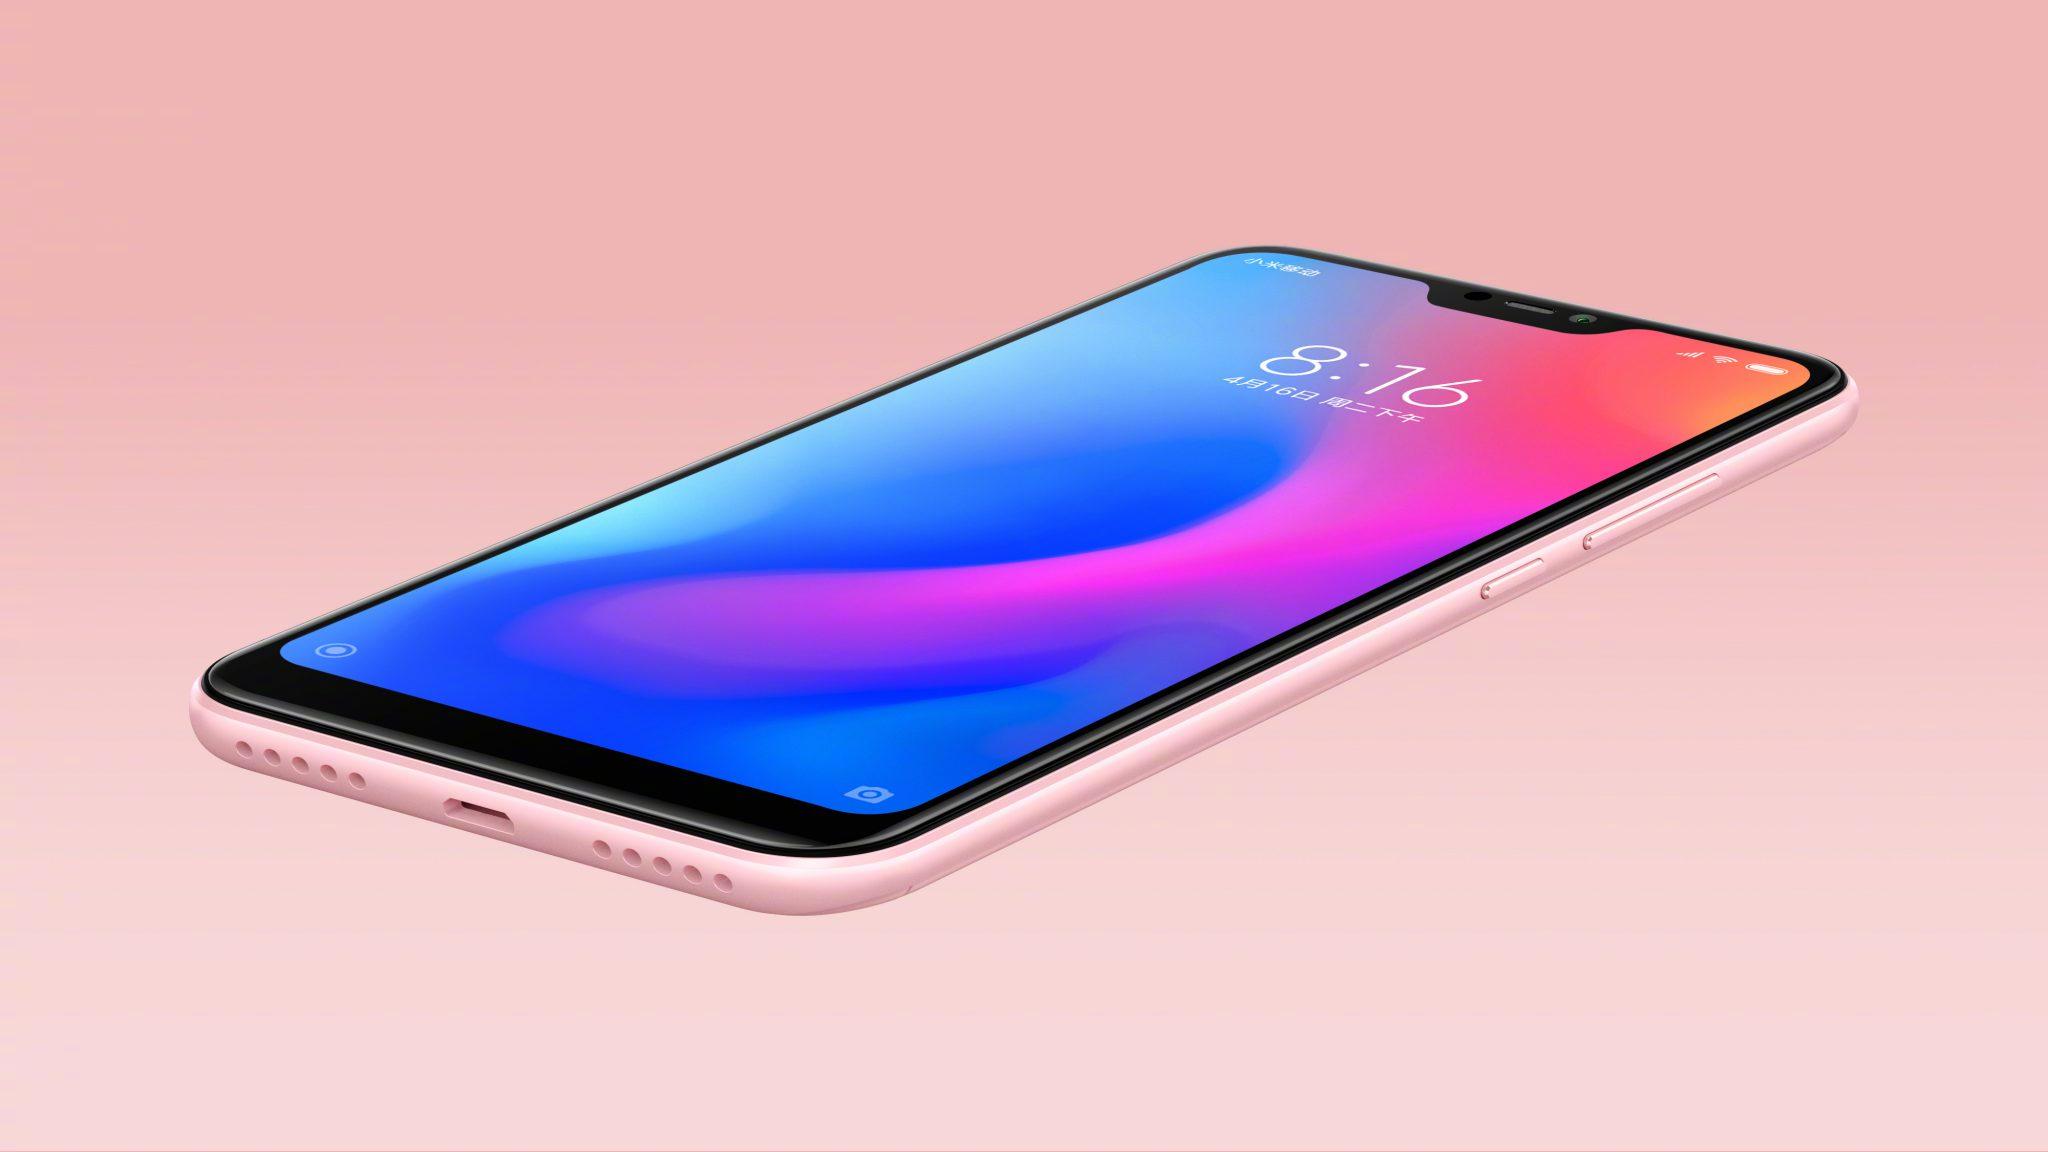 This is the Xiaomi Redmi 6 Pro with a Notch & dual cameras 6